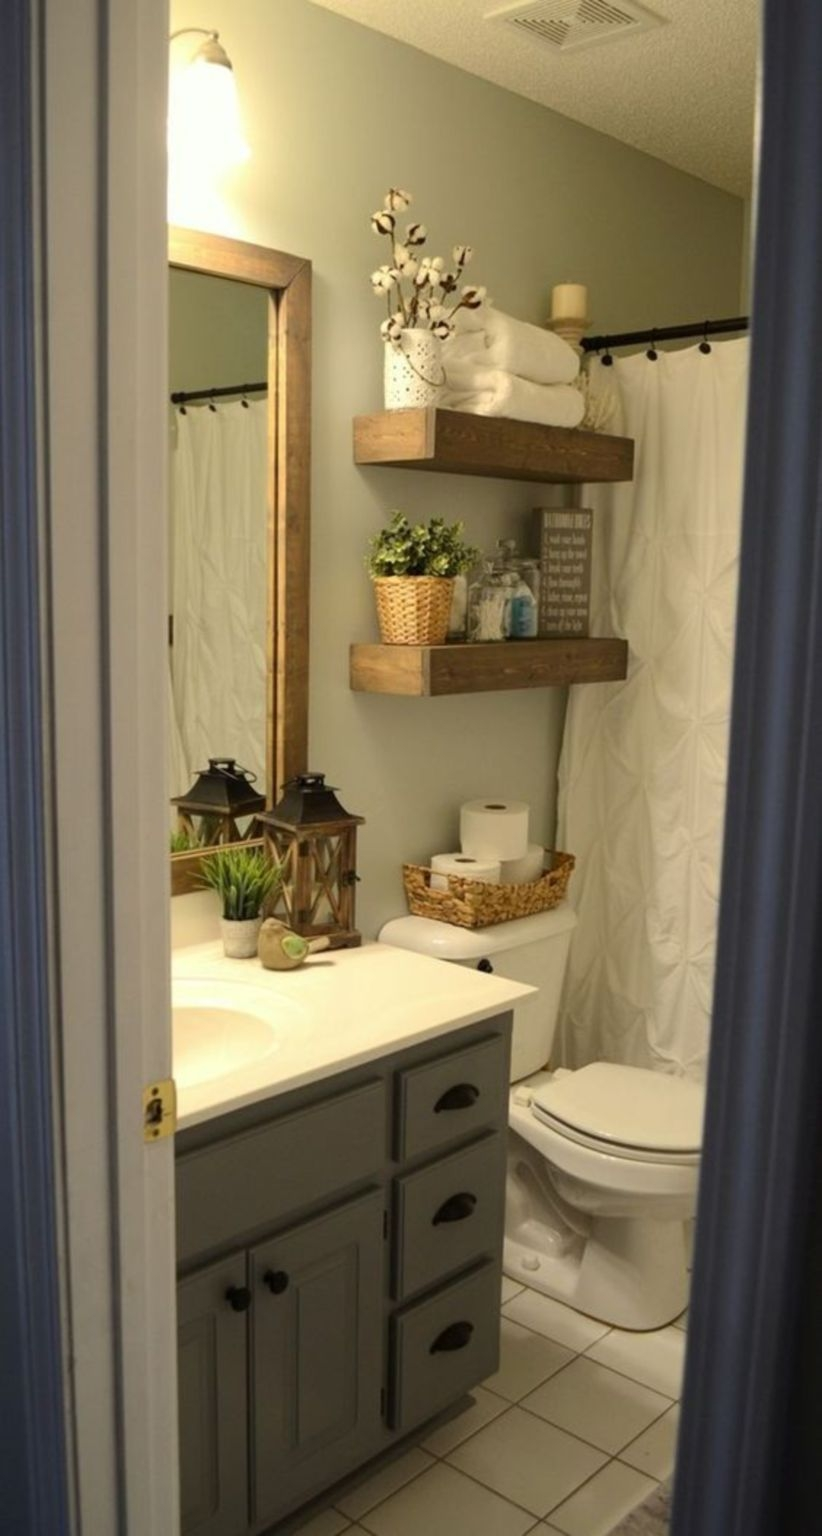 Modern farmhouse bathroom remodel ideas with small space